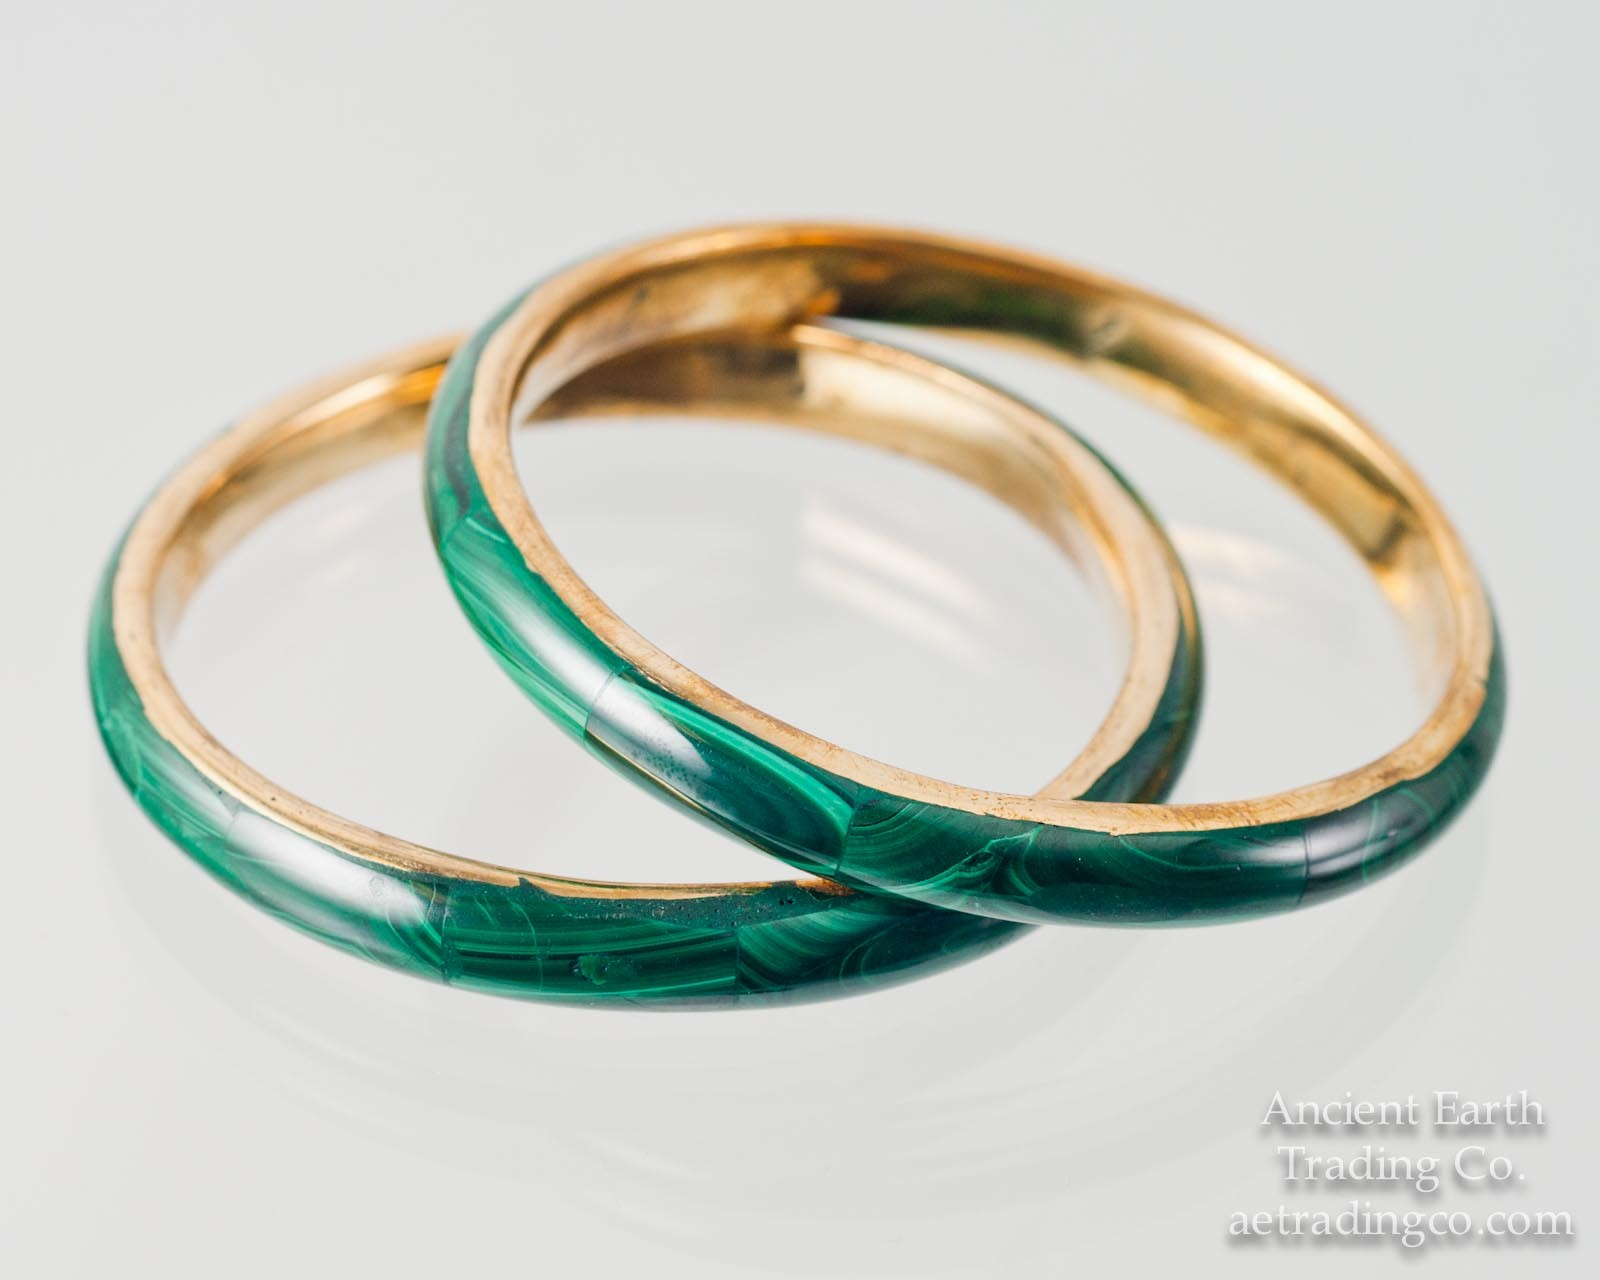 Vintage Malachite + Brass Handcrafted Bangle Bracelet from the Congo